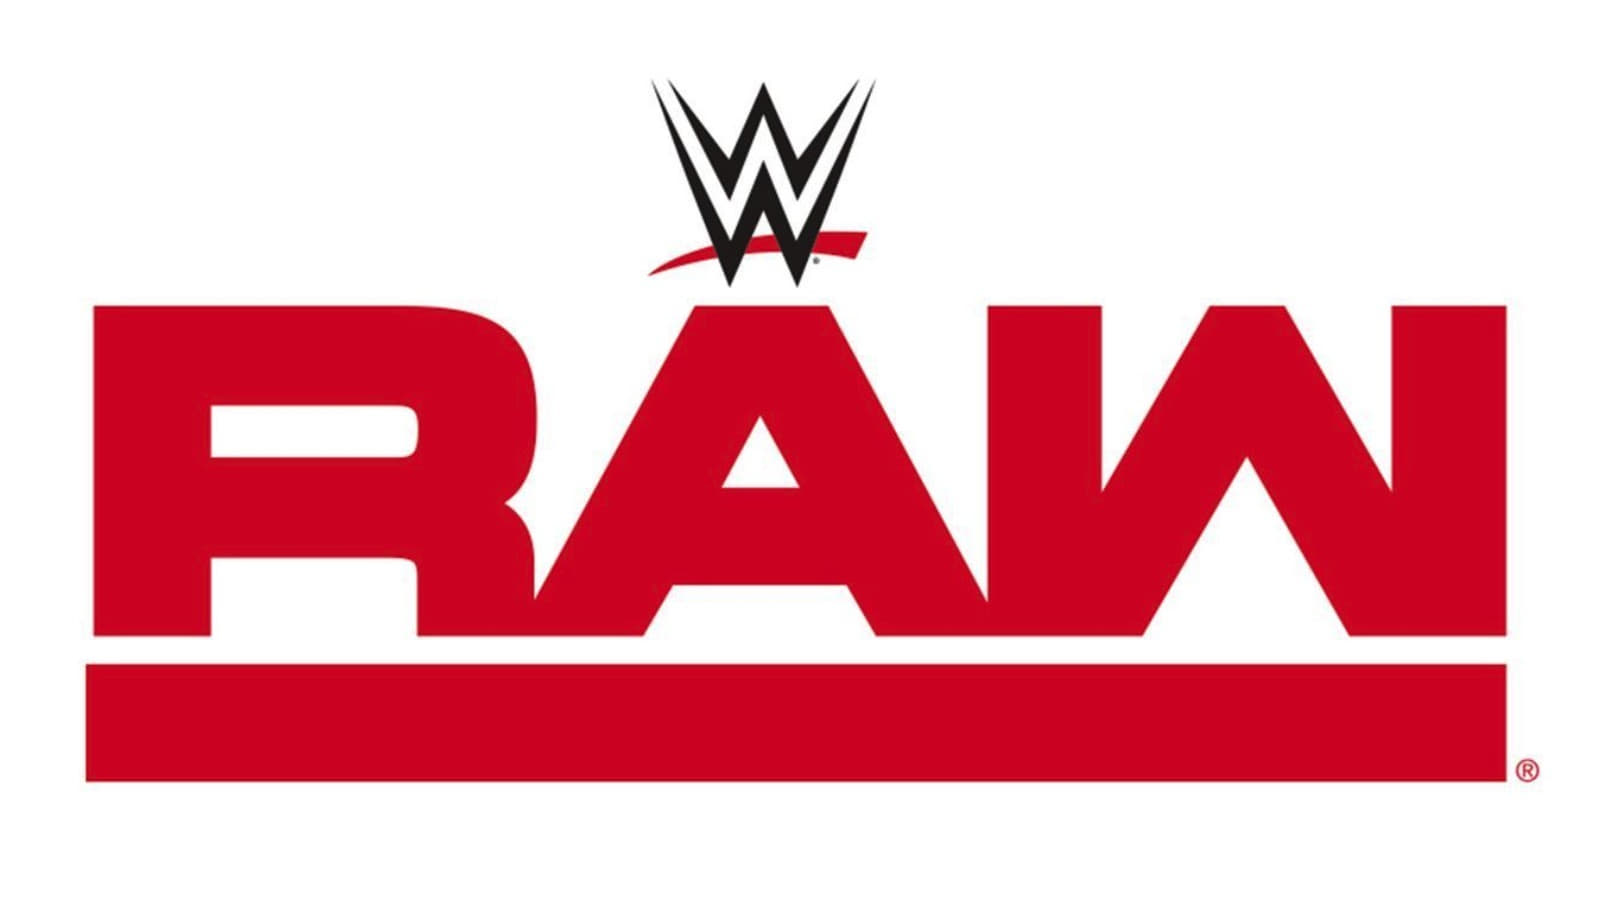 WWE Raw - Season 15 Episode 31 : Episode #743